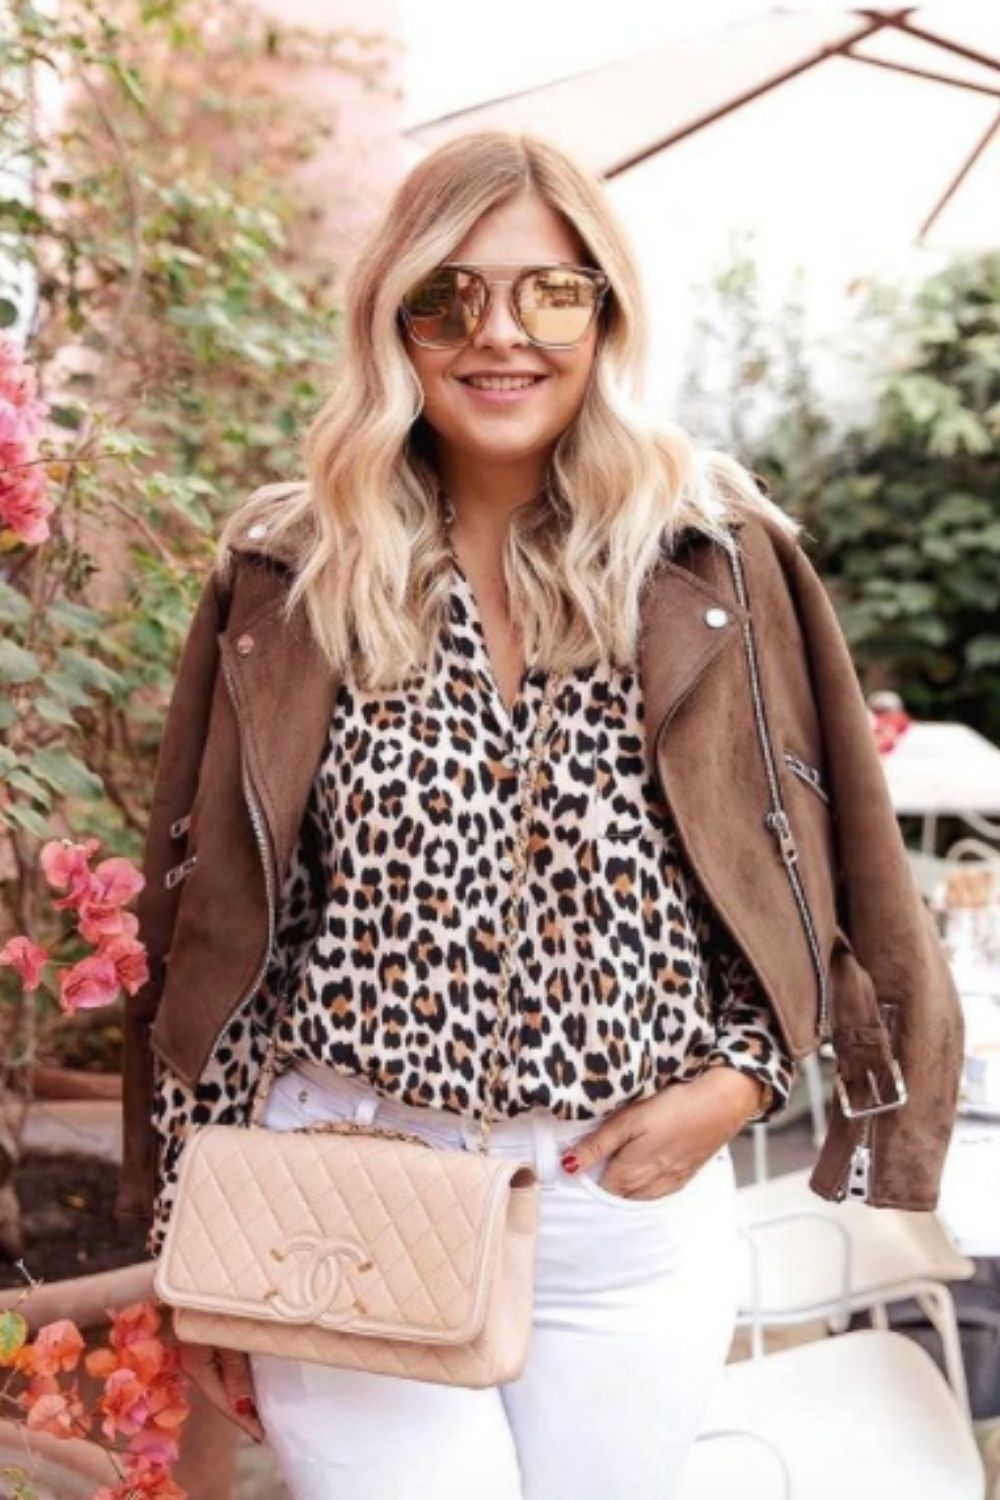 Capable Of Leopard Print Outfit Design